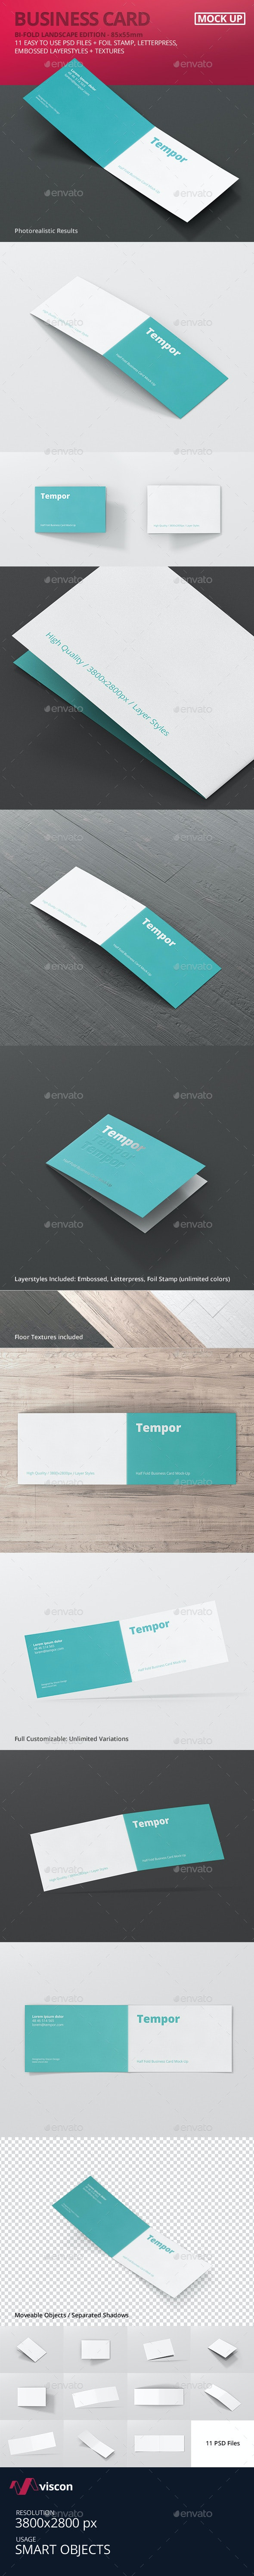 Folded Business Card Mockup - Business Cards Print